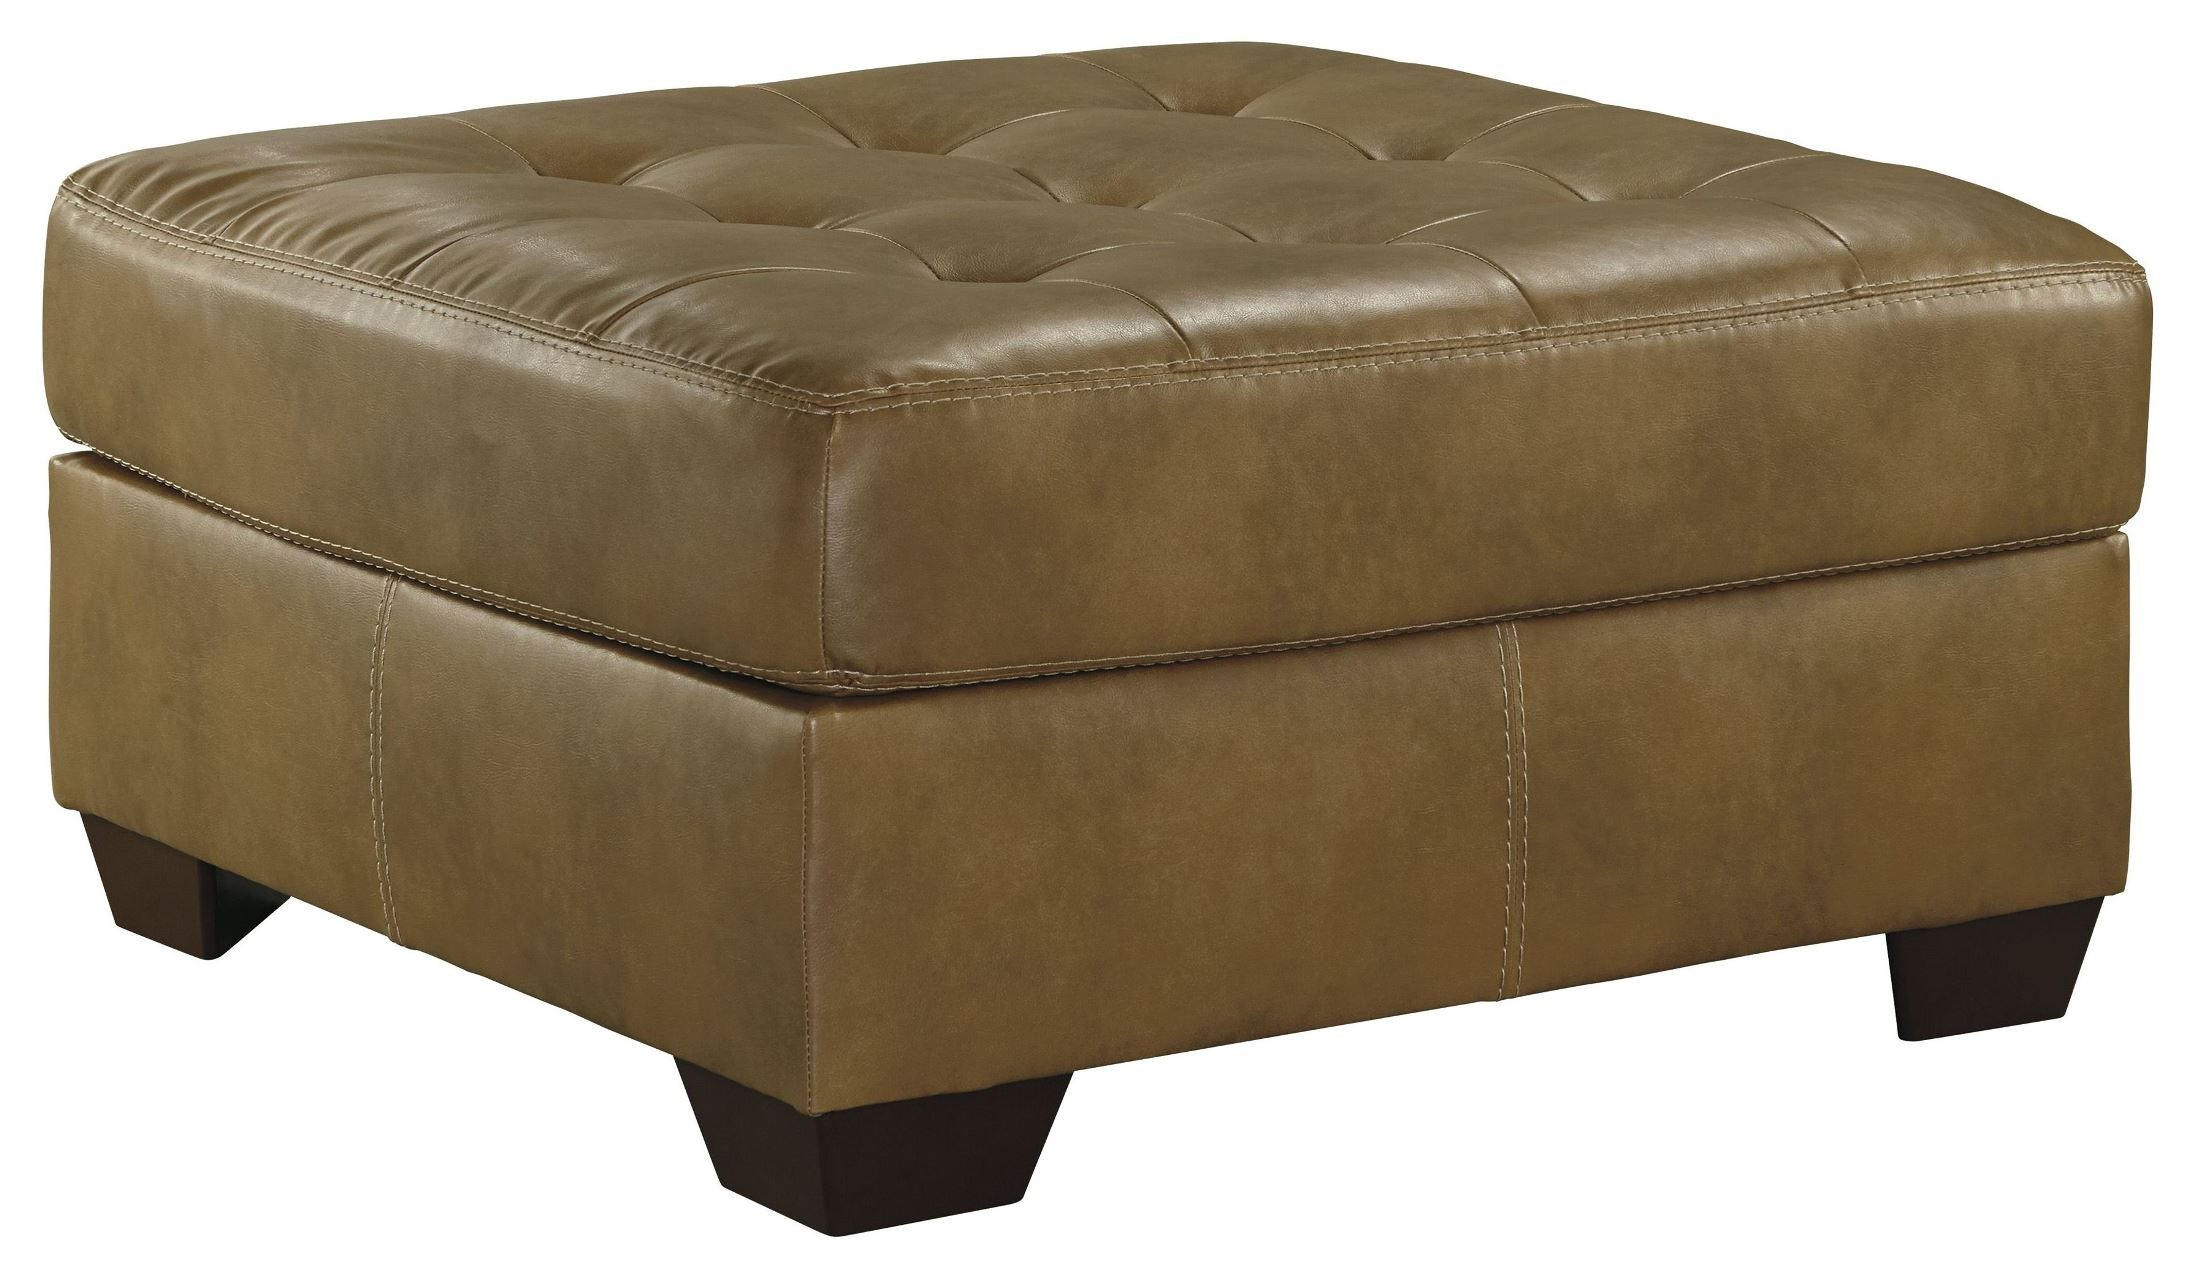 Declain Sand Oversized Accent Ottoman From Ashley 8630208